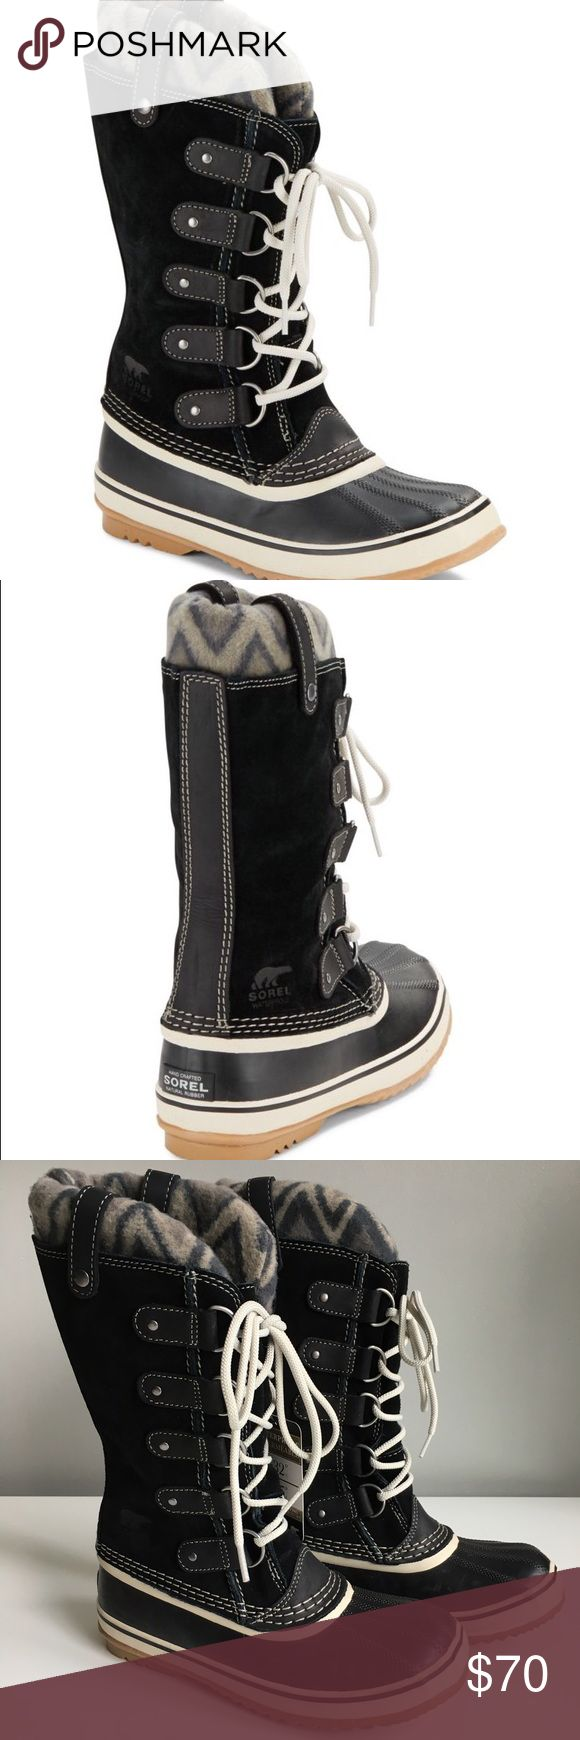 Rubber mats exeter - Sorel Joan Of Arctic Black Winter Boots Size 7 5 Nwt